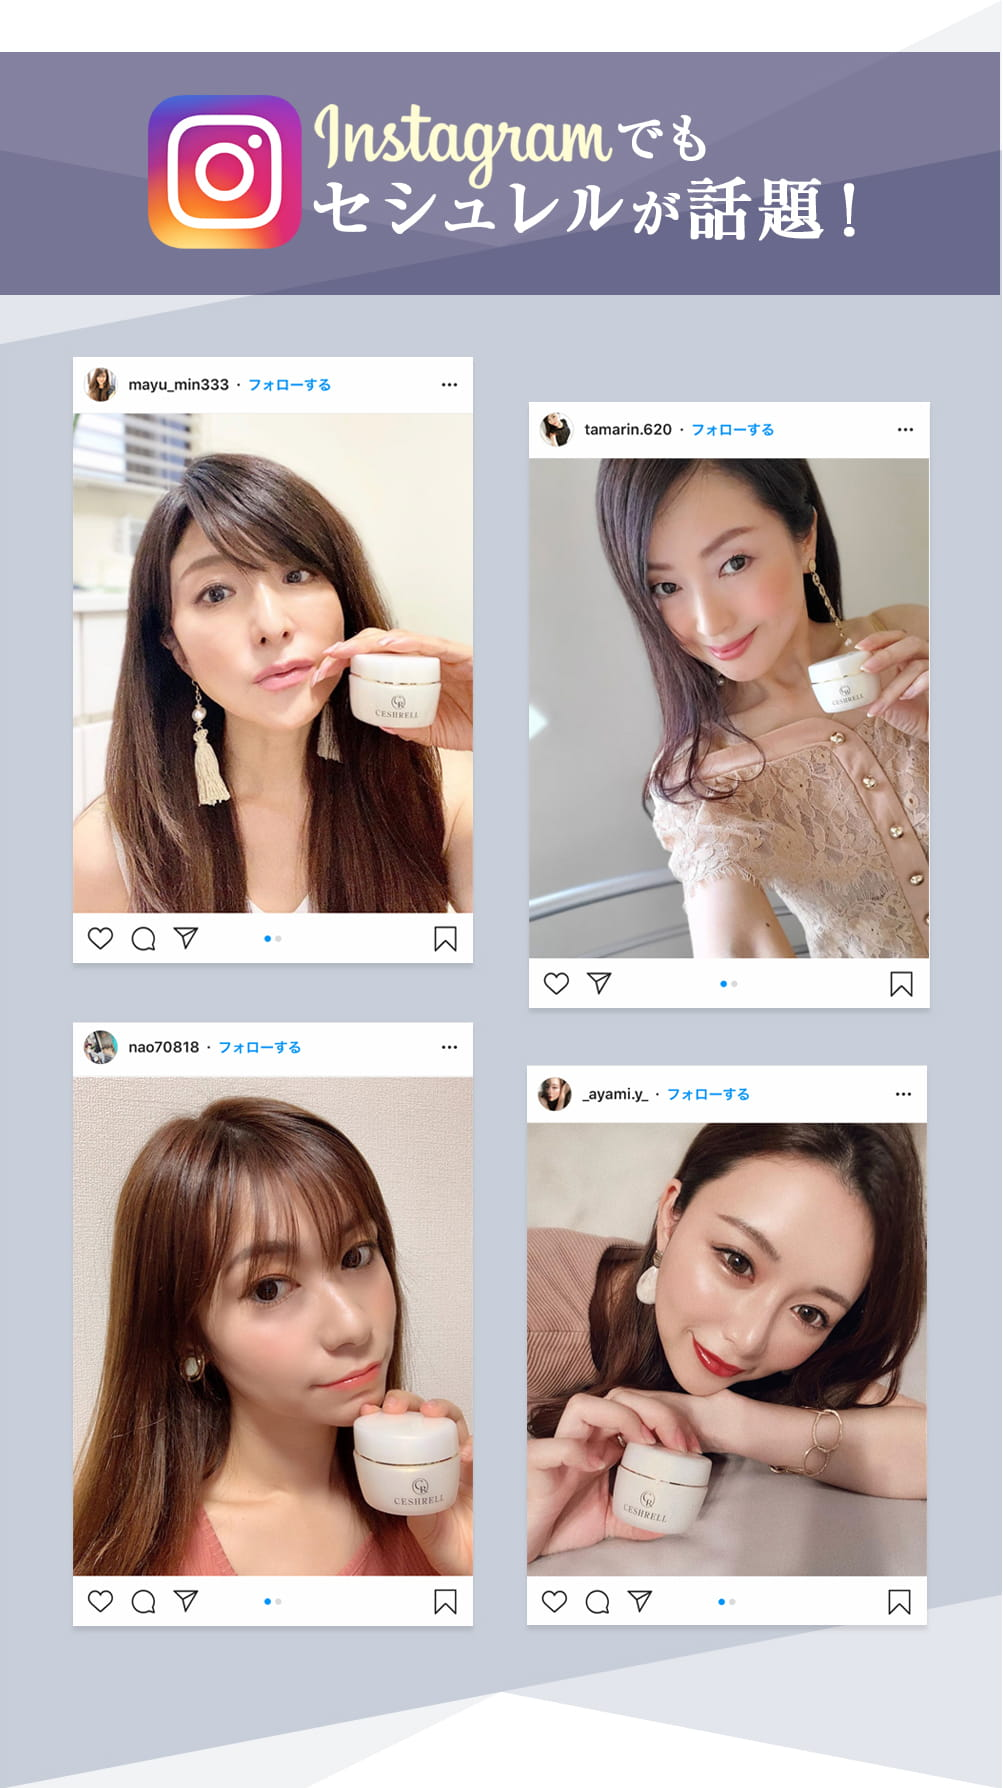 instagramでもセシュレルが話題